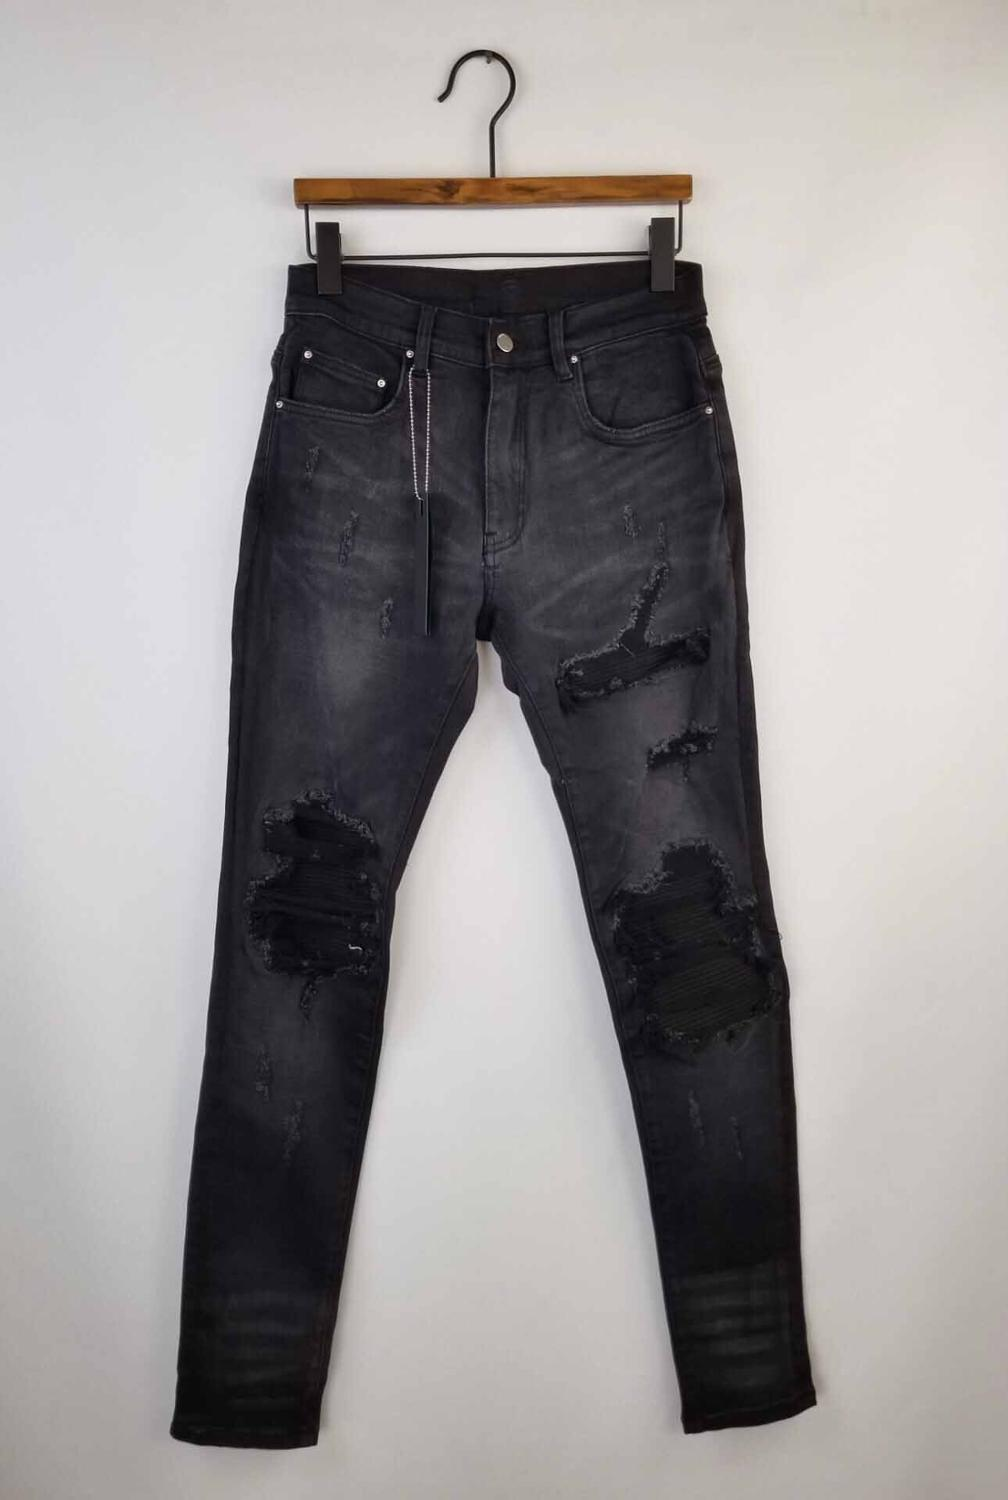 New Men Stretchy Skinny Fabric Ribbed Patch Distressed Denim Jeans